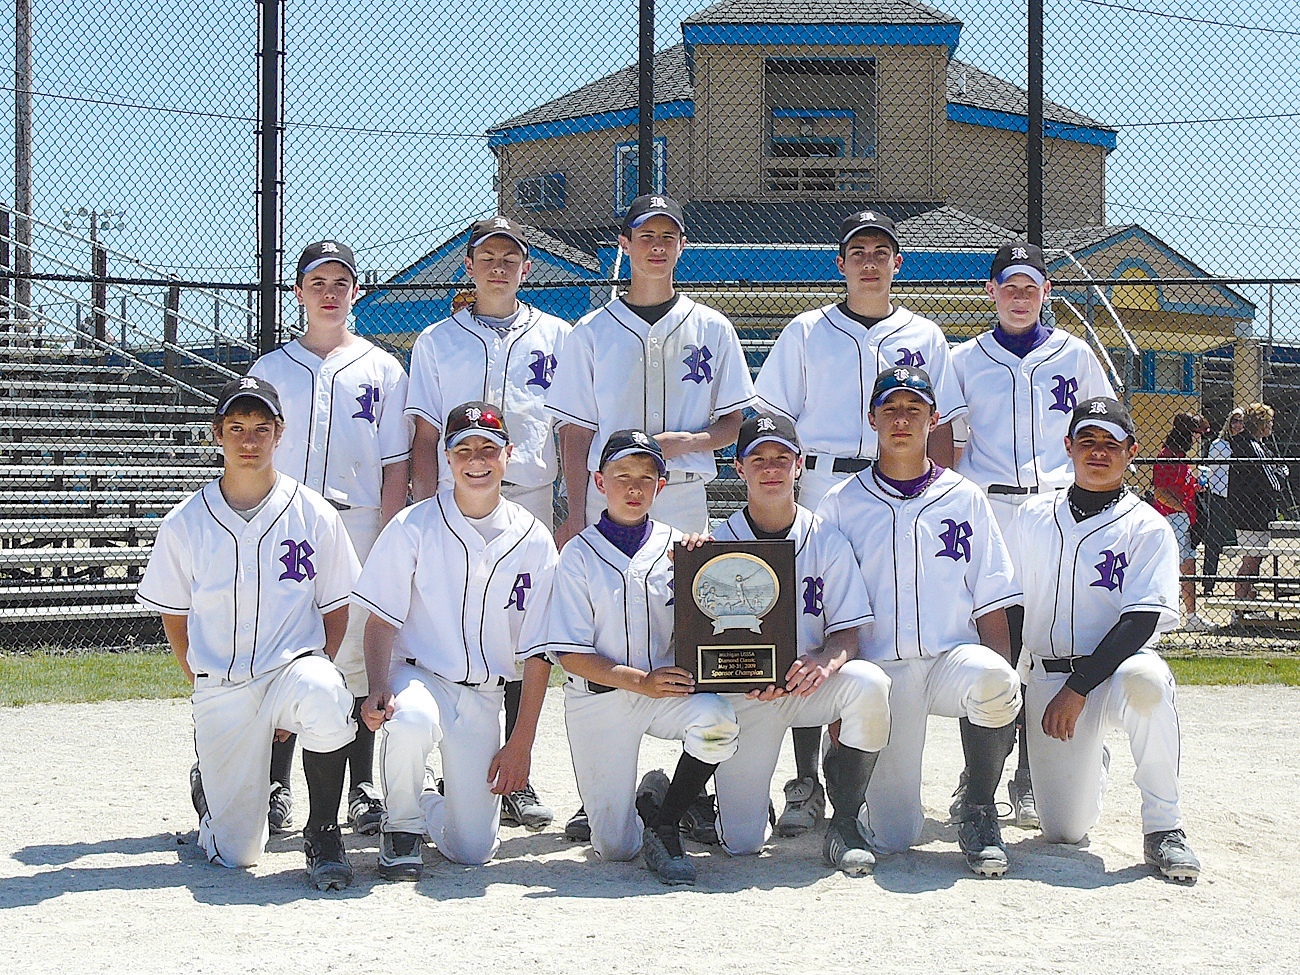 The undefeated Rockford Raptors 13U baseball team of (front, l–r) Matt DiLeo, David Sokol, Bobby Wilson, Jon Stewart, Kory Young, Brent Showers; (back) Andy Woodruff, Reid Kelley, Josh Neideck, Ryan Jerrils and Andrew Searl bring home the Diamond Classic tournament